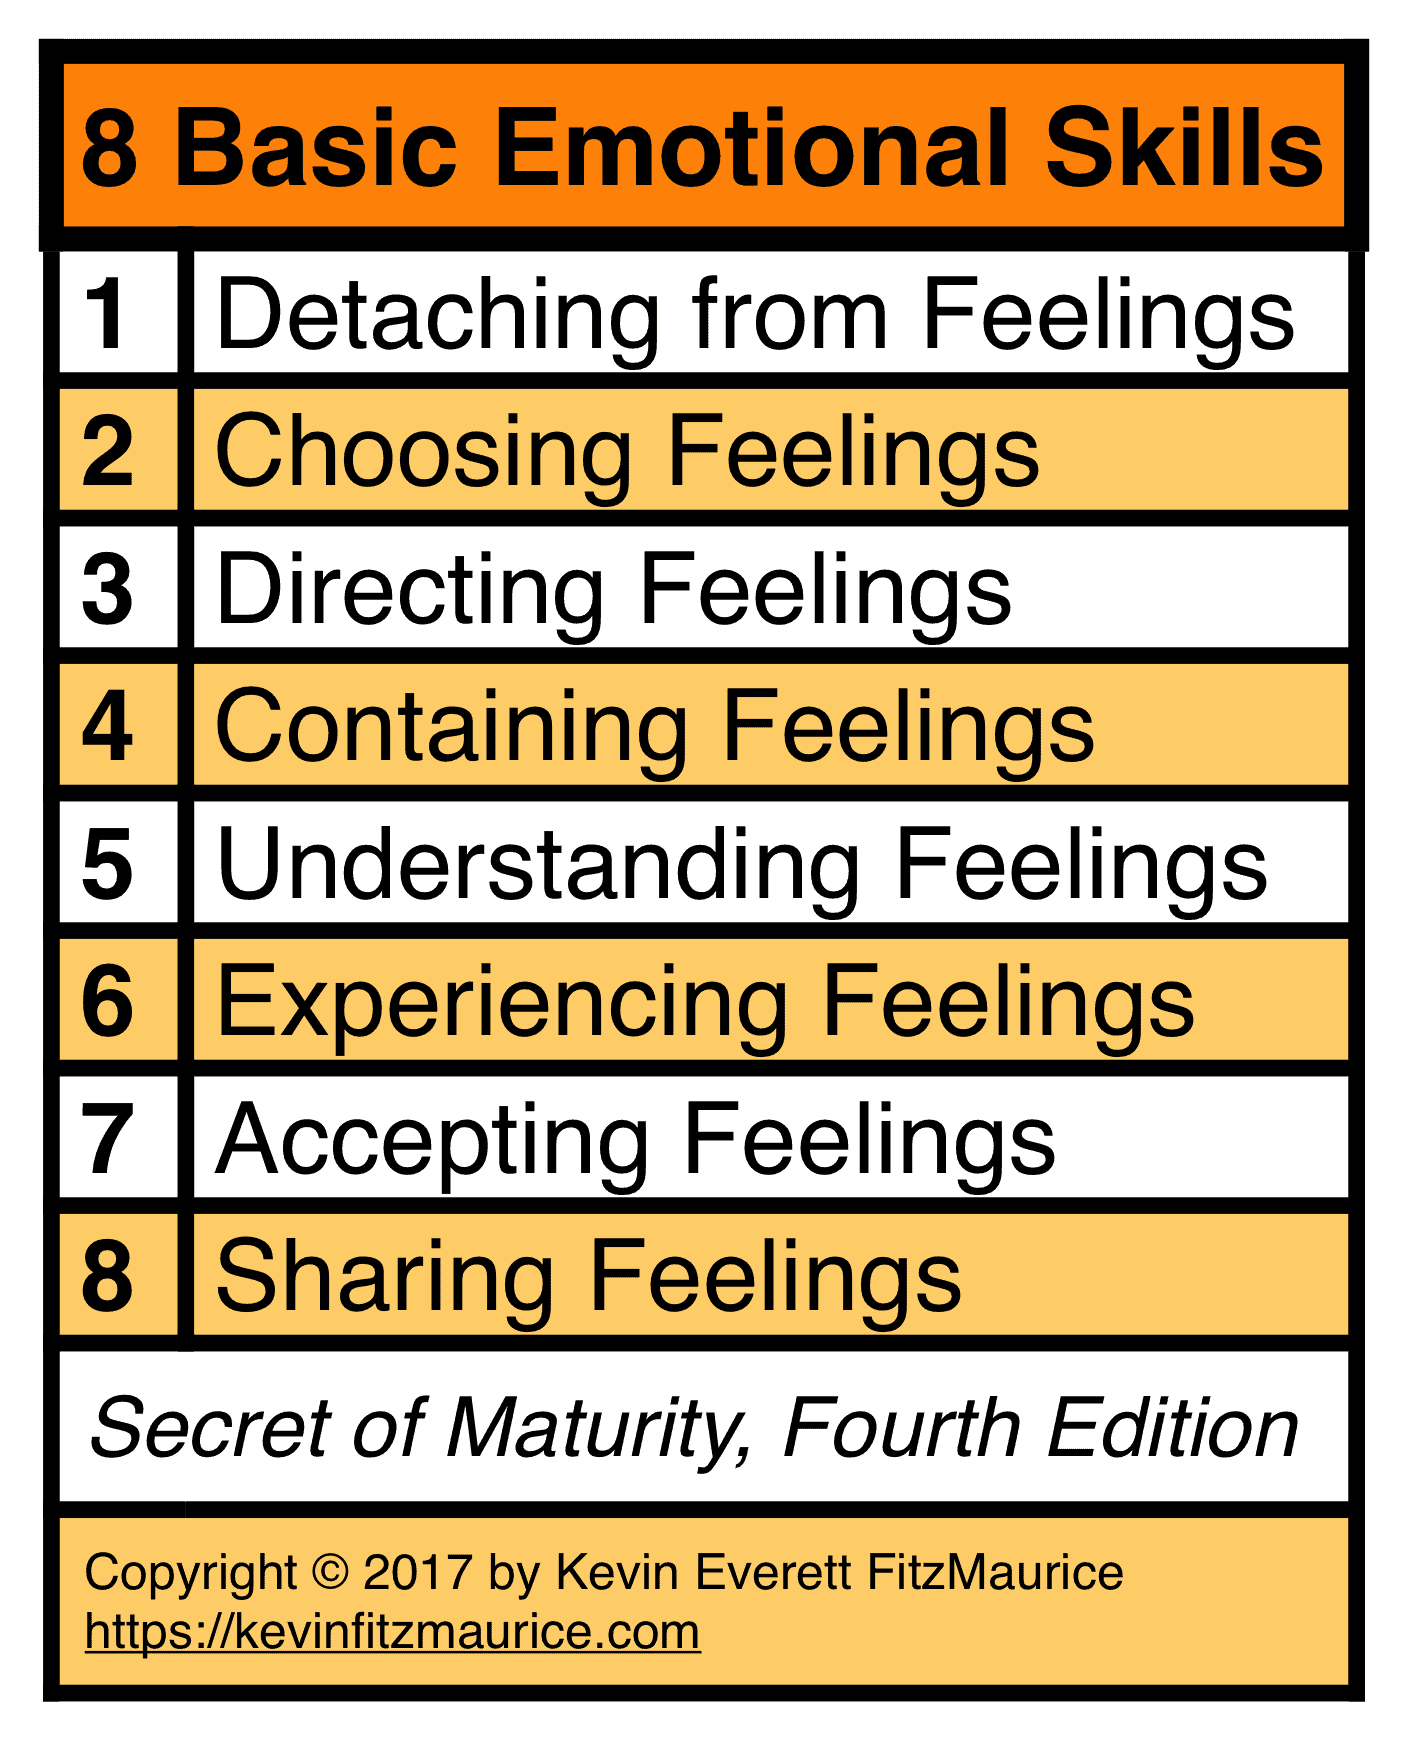 8 Basic Emotional Skills